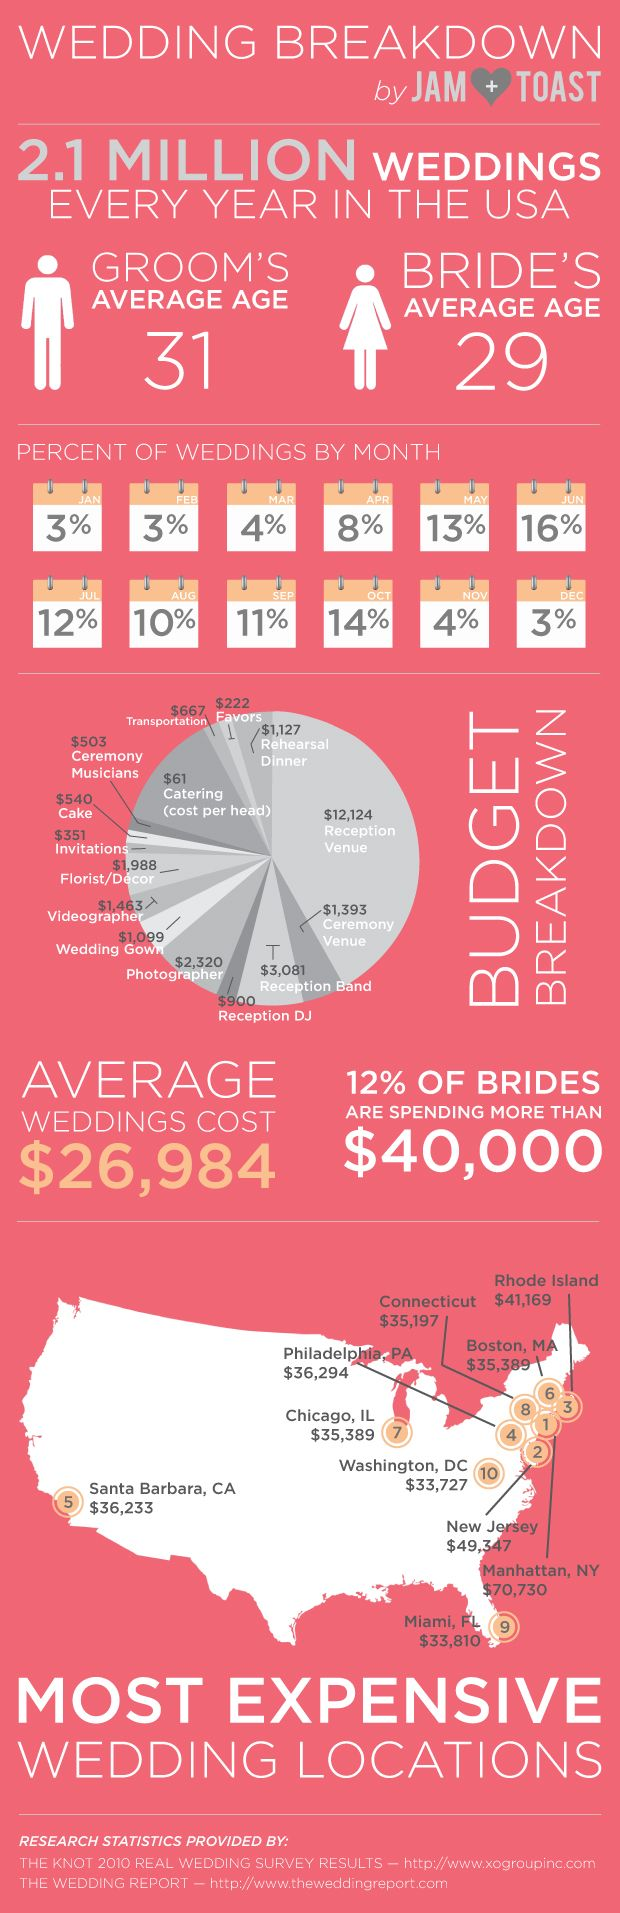 There are 2.1 MILLION WEDDINGS per year in the USA with an average cost of $26,984 (via @Shane McMurray / The Wedding Report and @The Knot) #wedding #industry #statistics